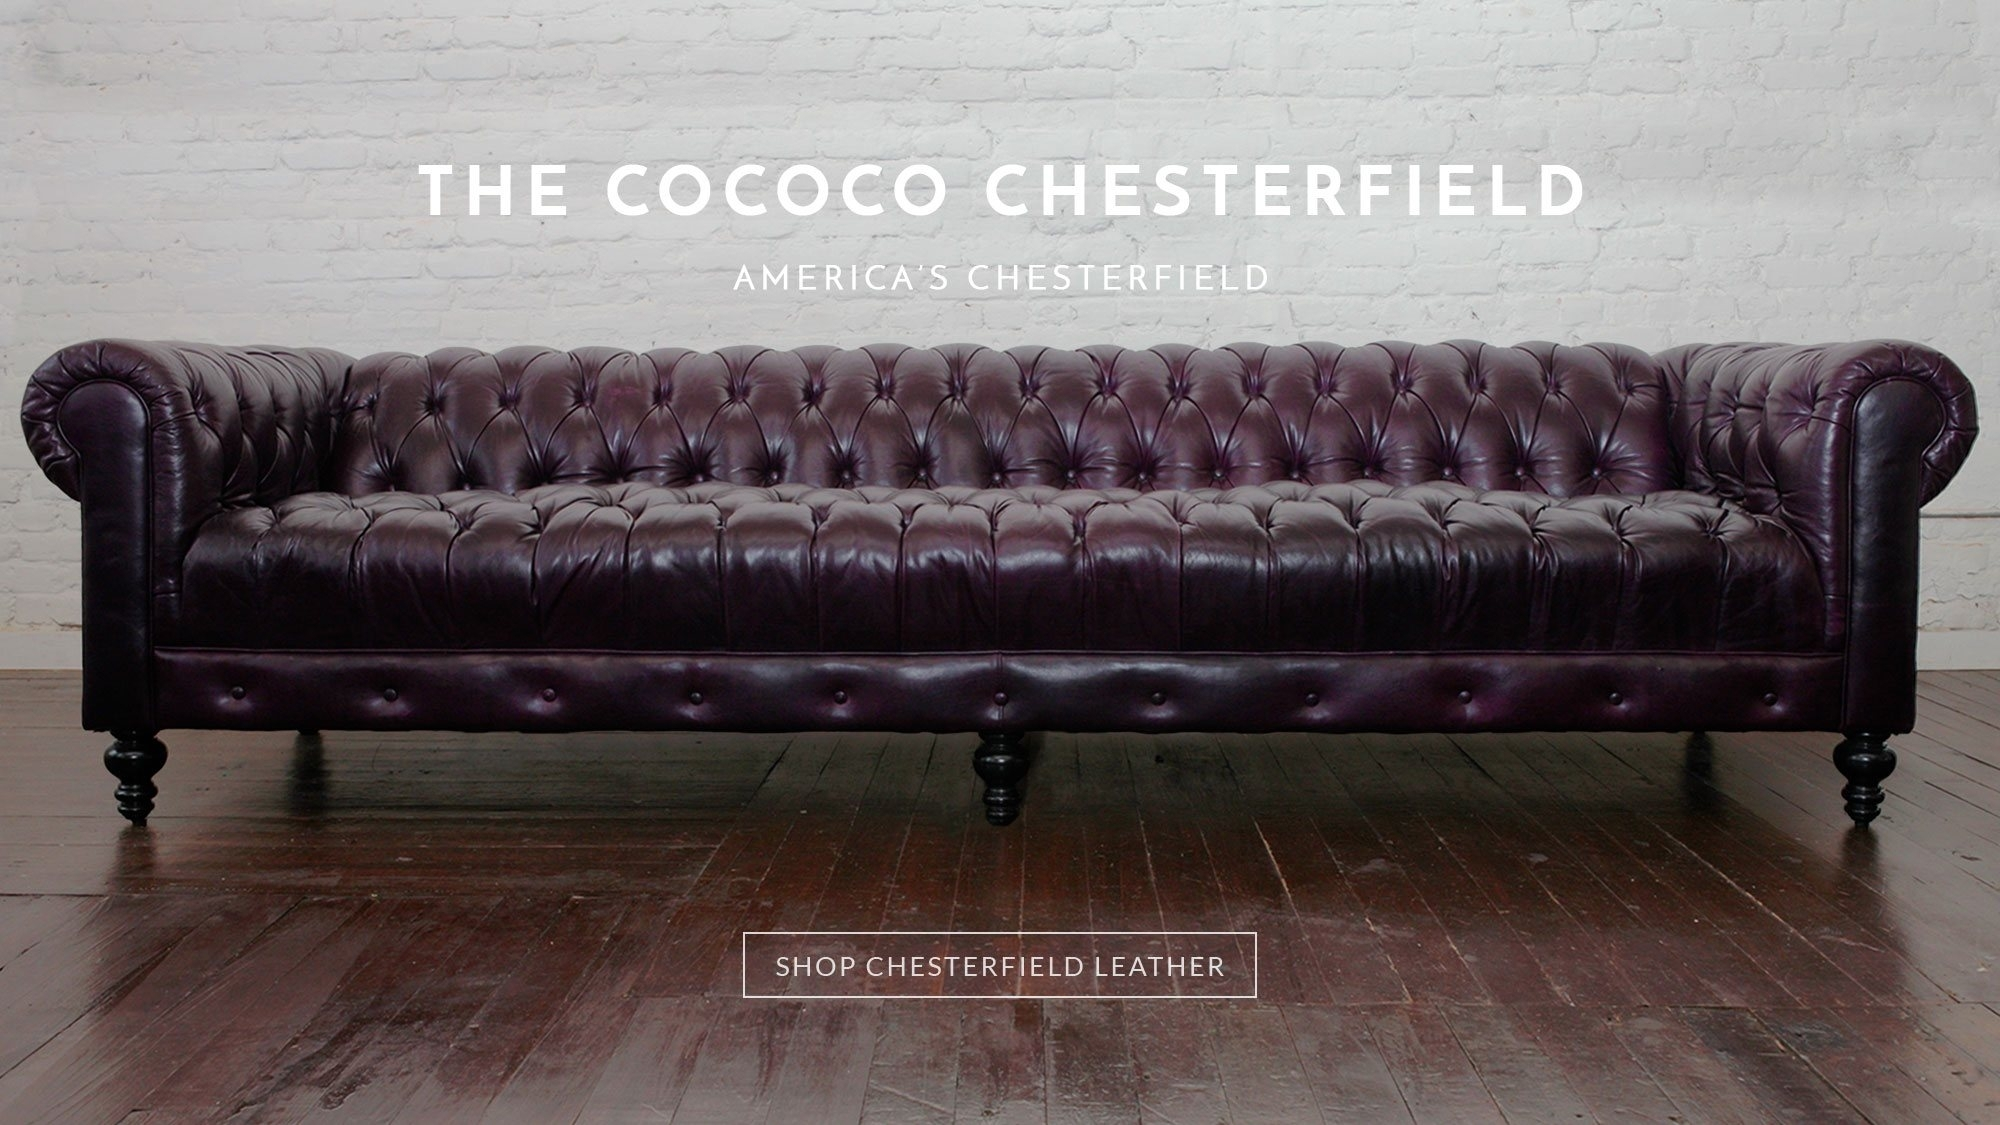 Chesterfield Sofas, Modern Furniture Made In Usa | Cococohome within Sectional Sofas At Charlotte Nc (Image 6 of 15)